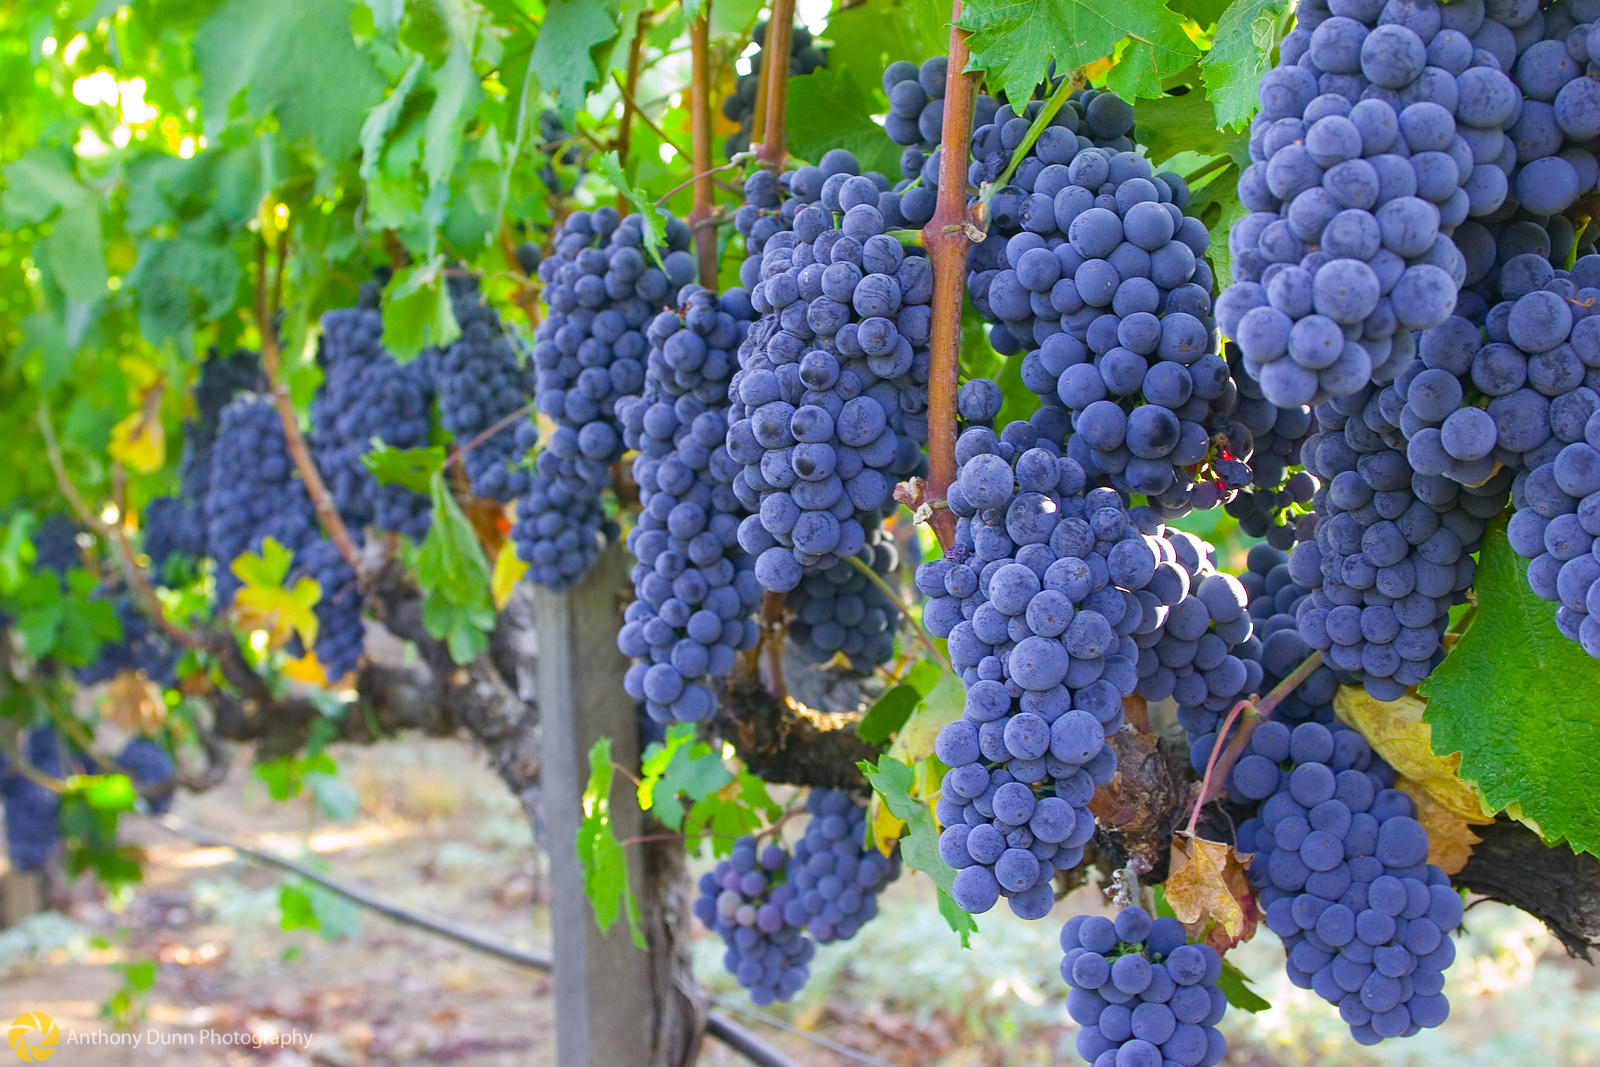 Ripe Grapes, Wilderotter Vineyards #5